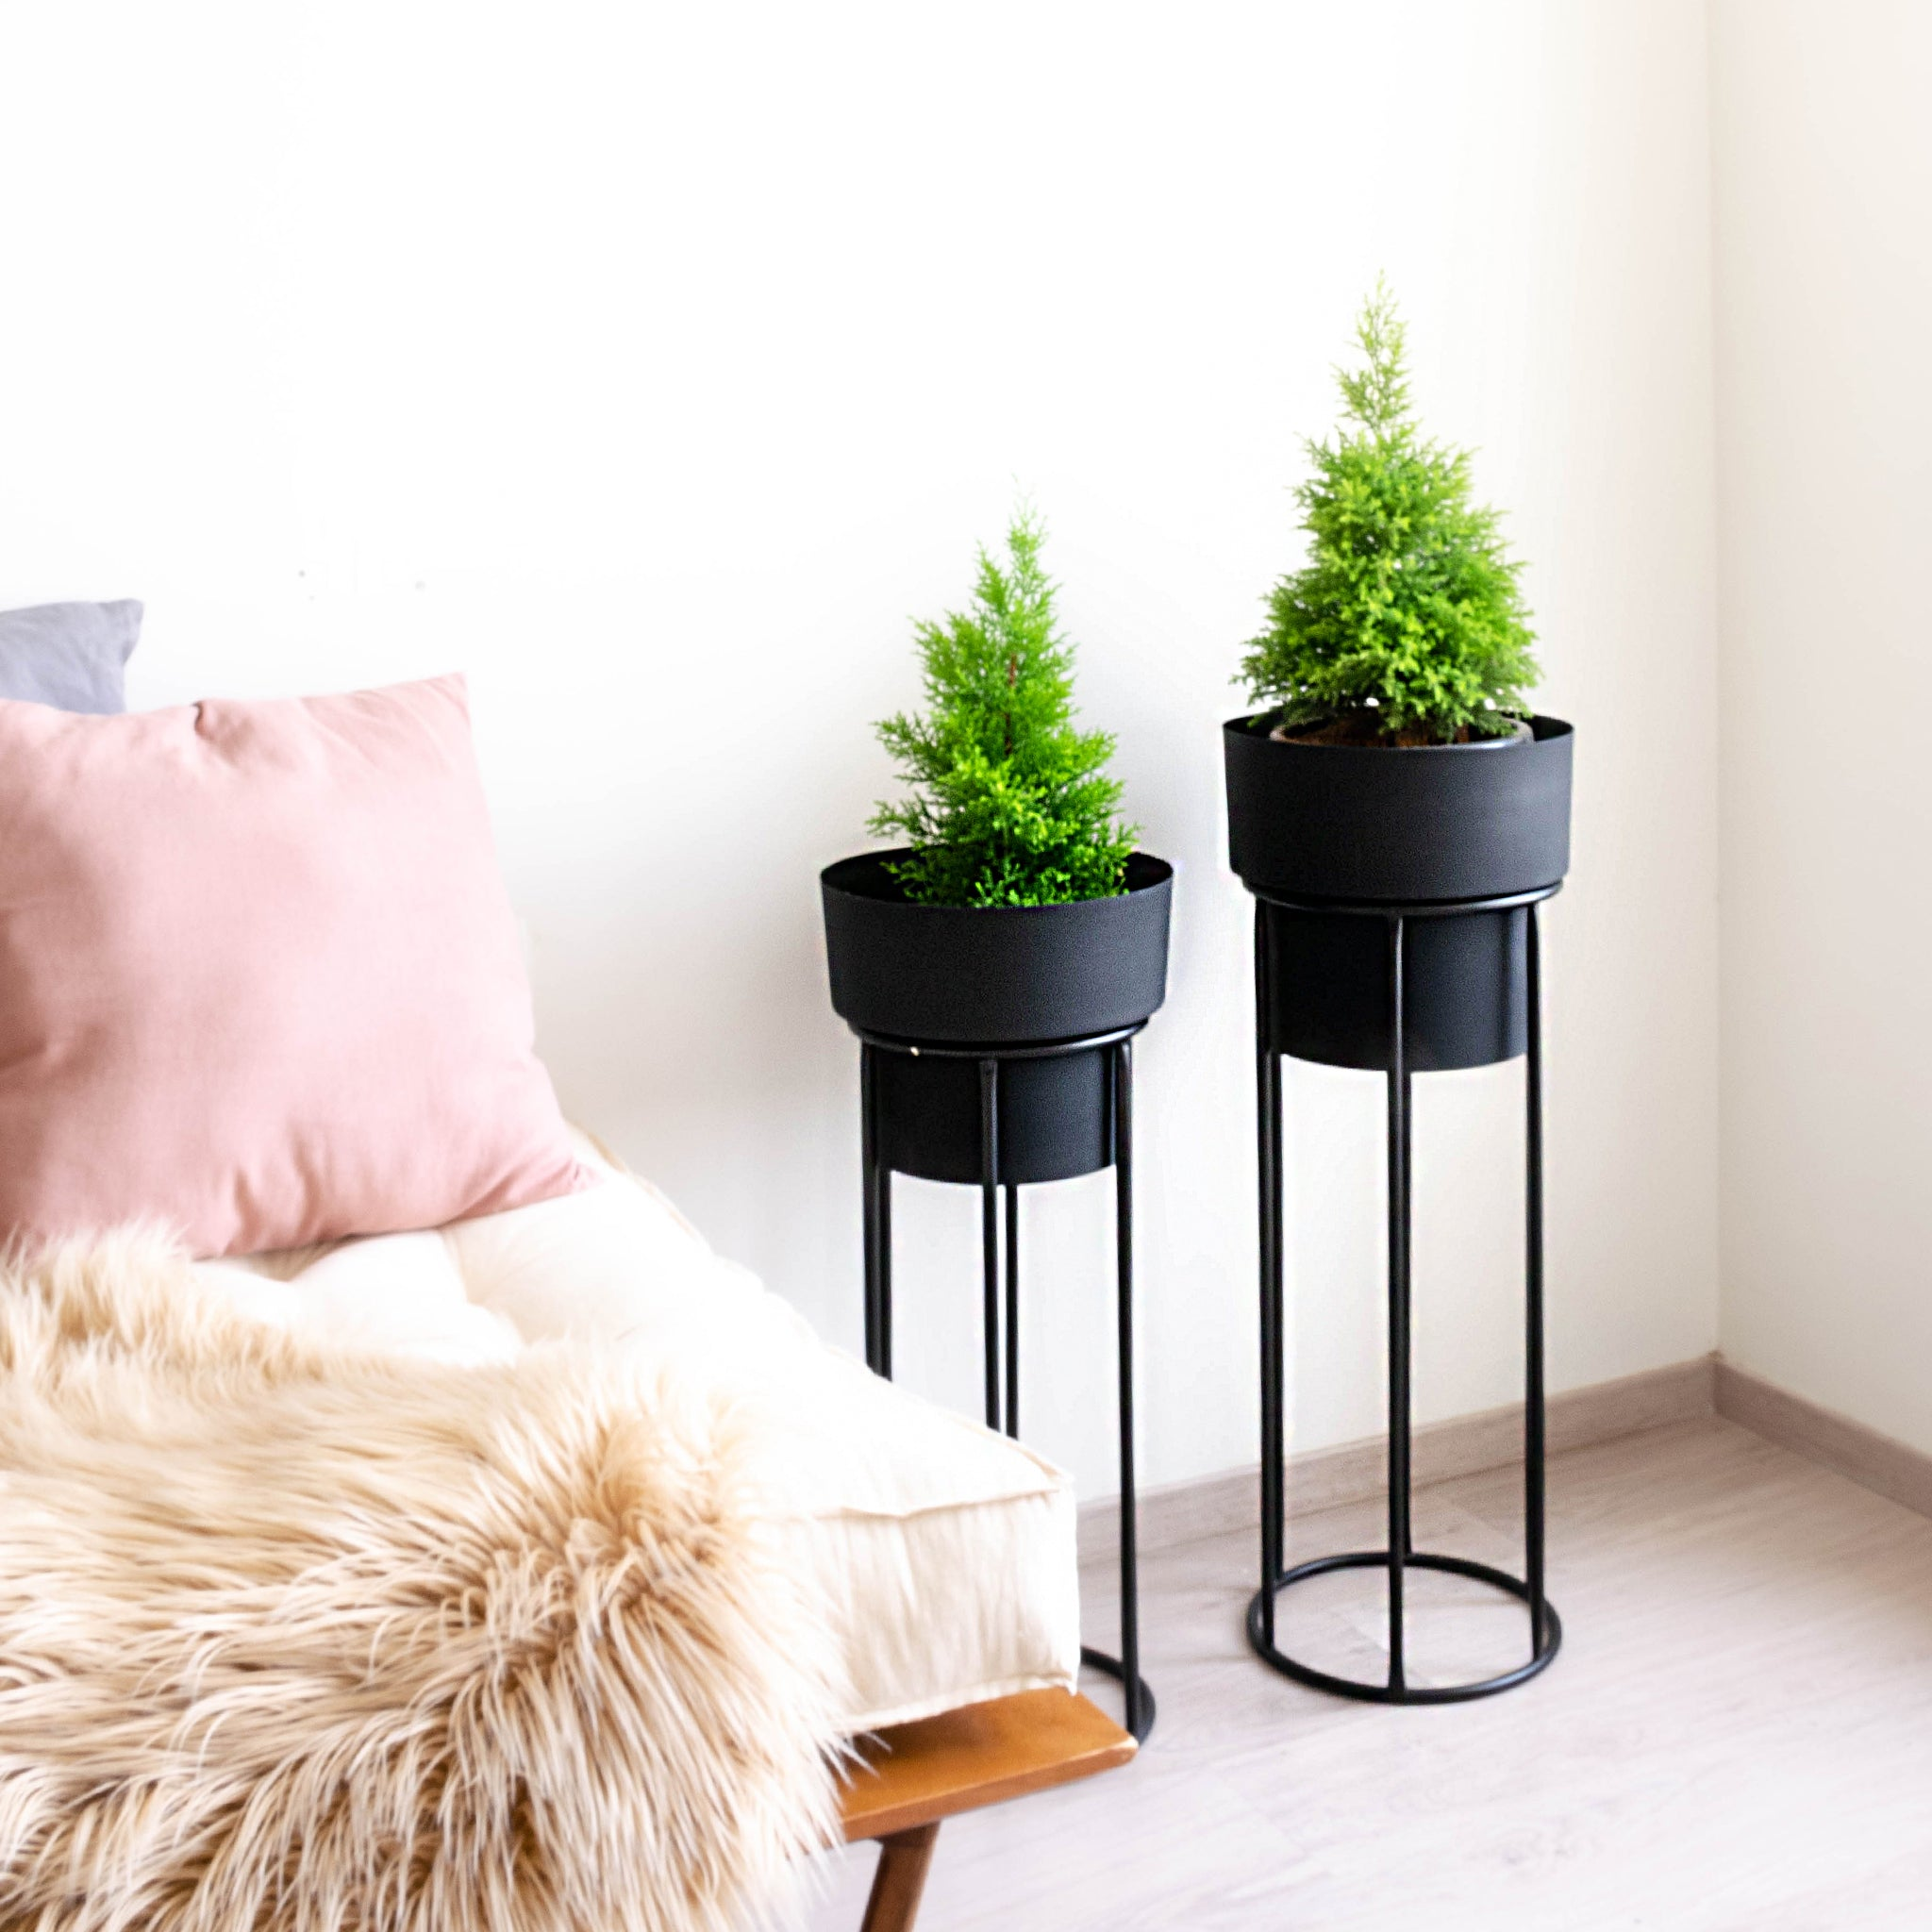 Two tall  planters, black pots with black stands, next to a daybed